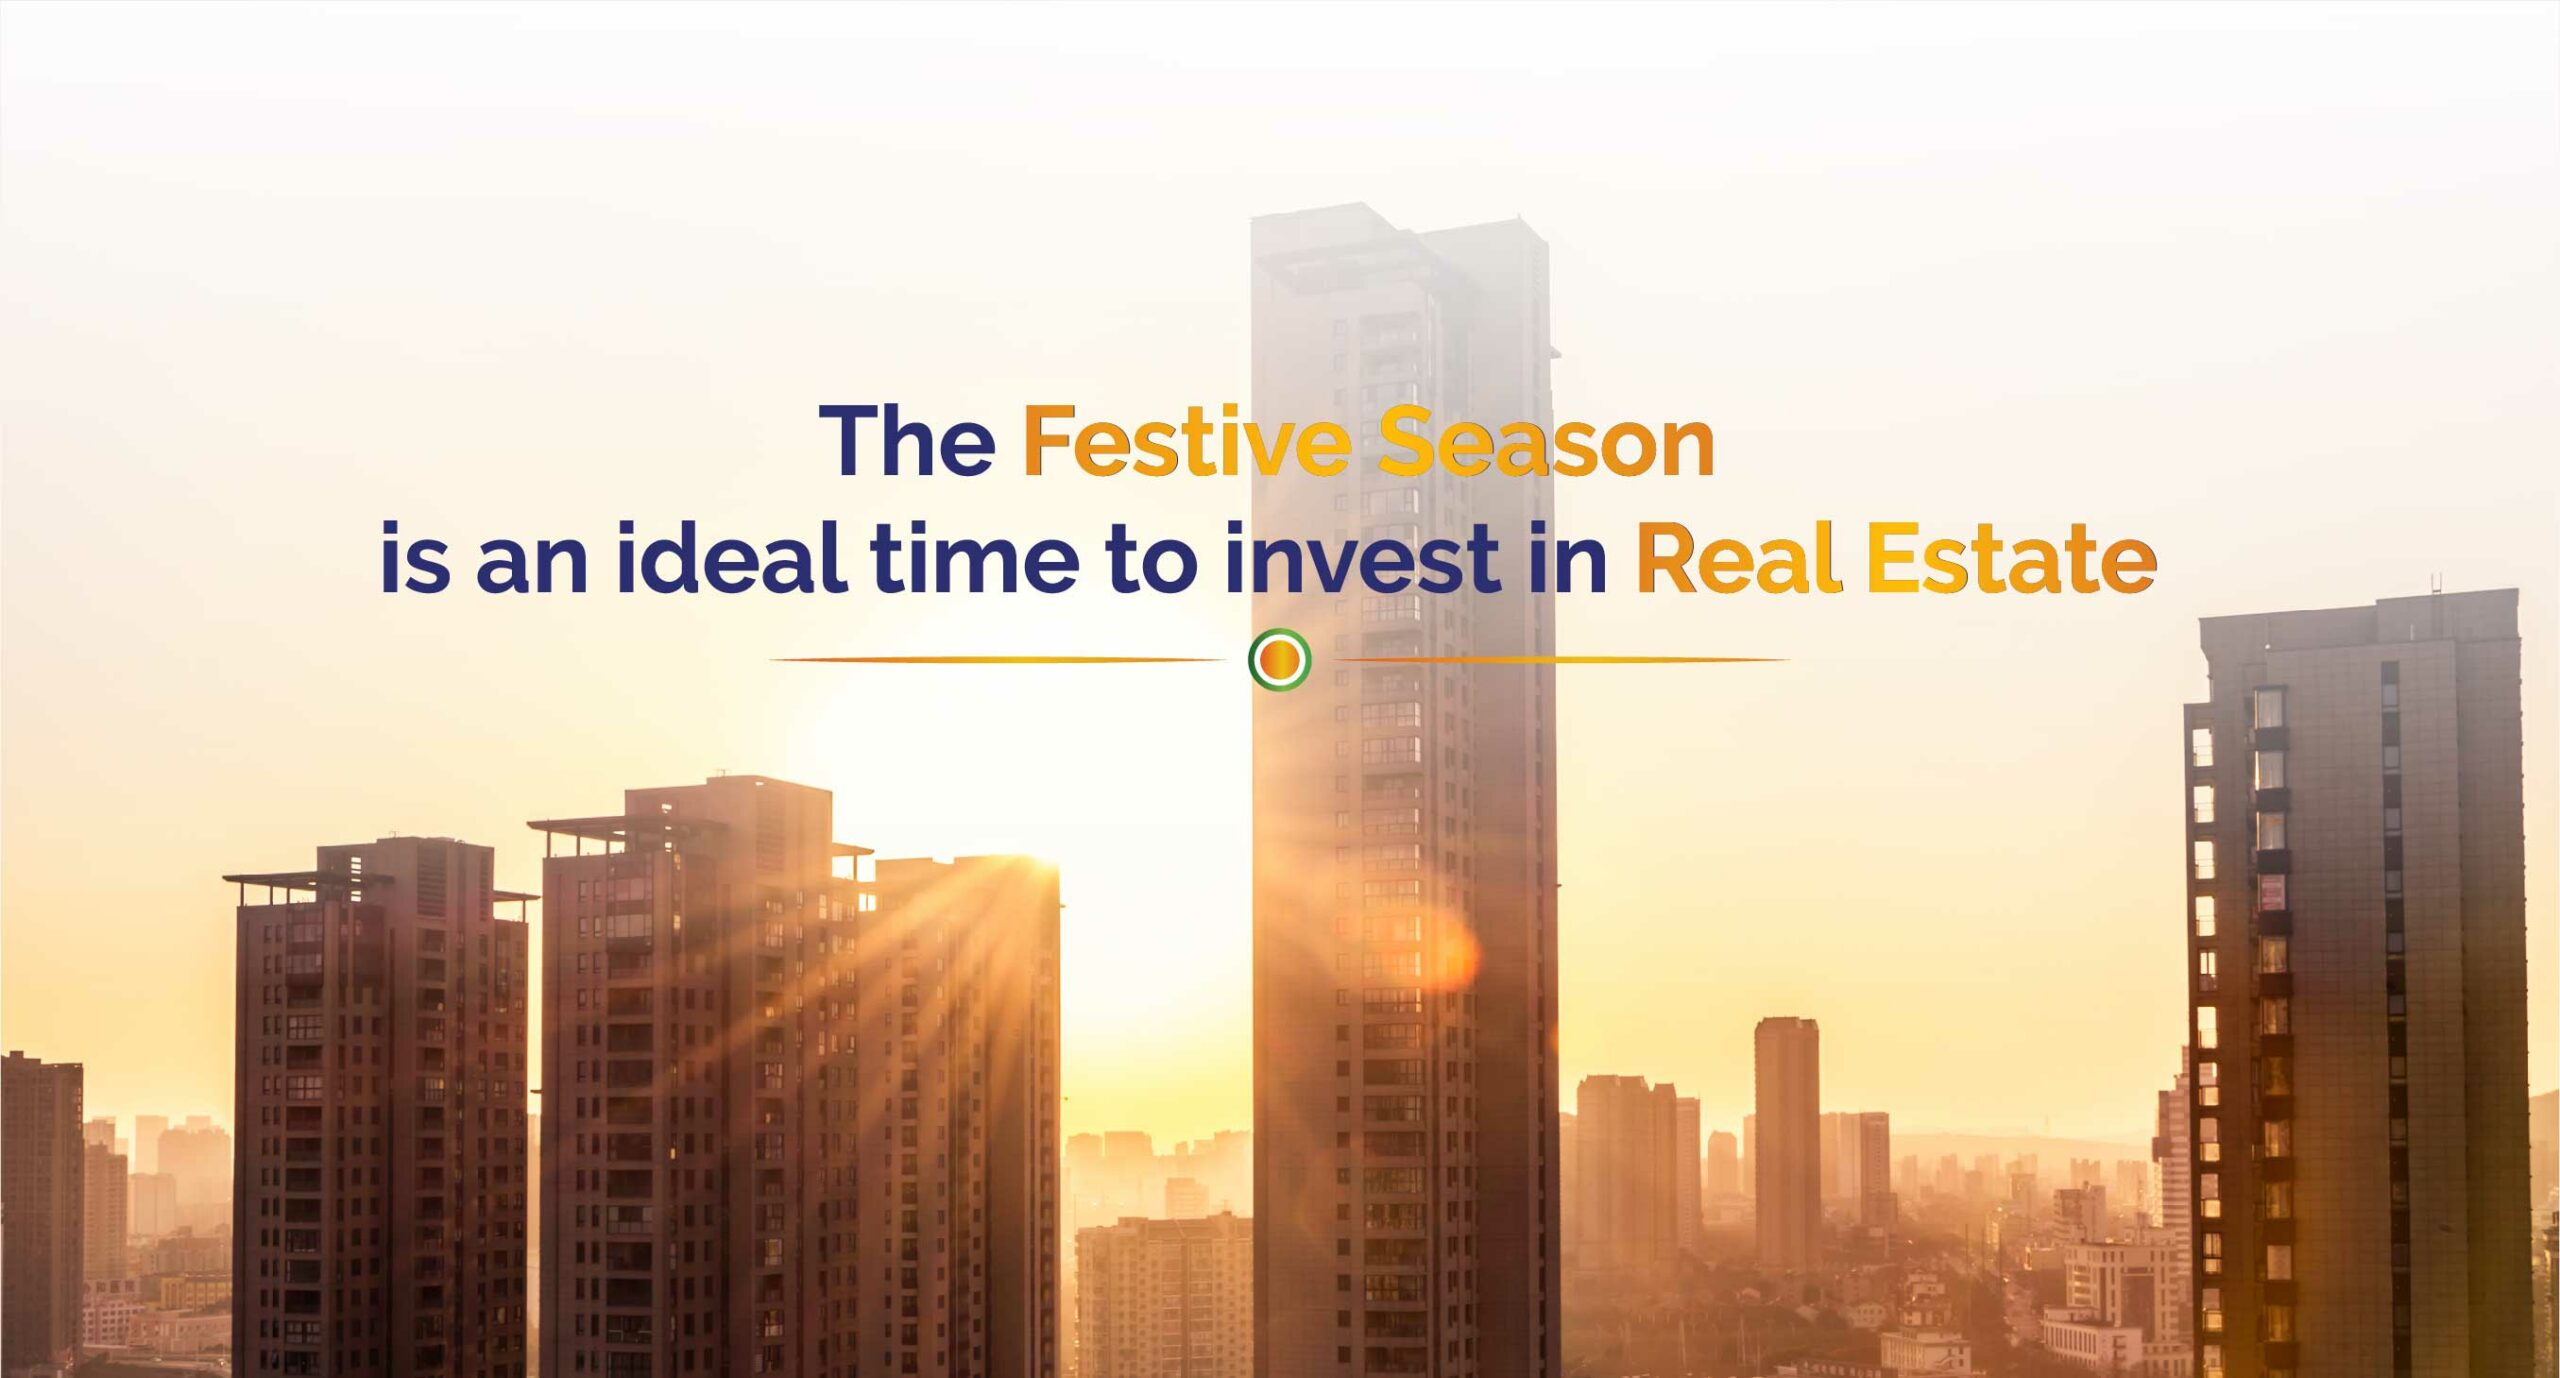 Why is the Festive Season the Perfect Time to Invest in Real Estate?